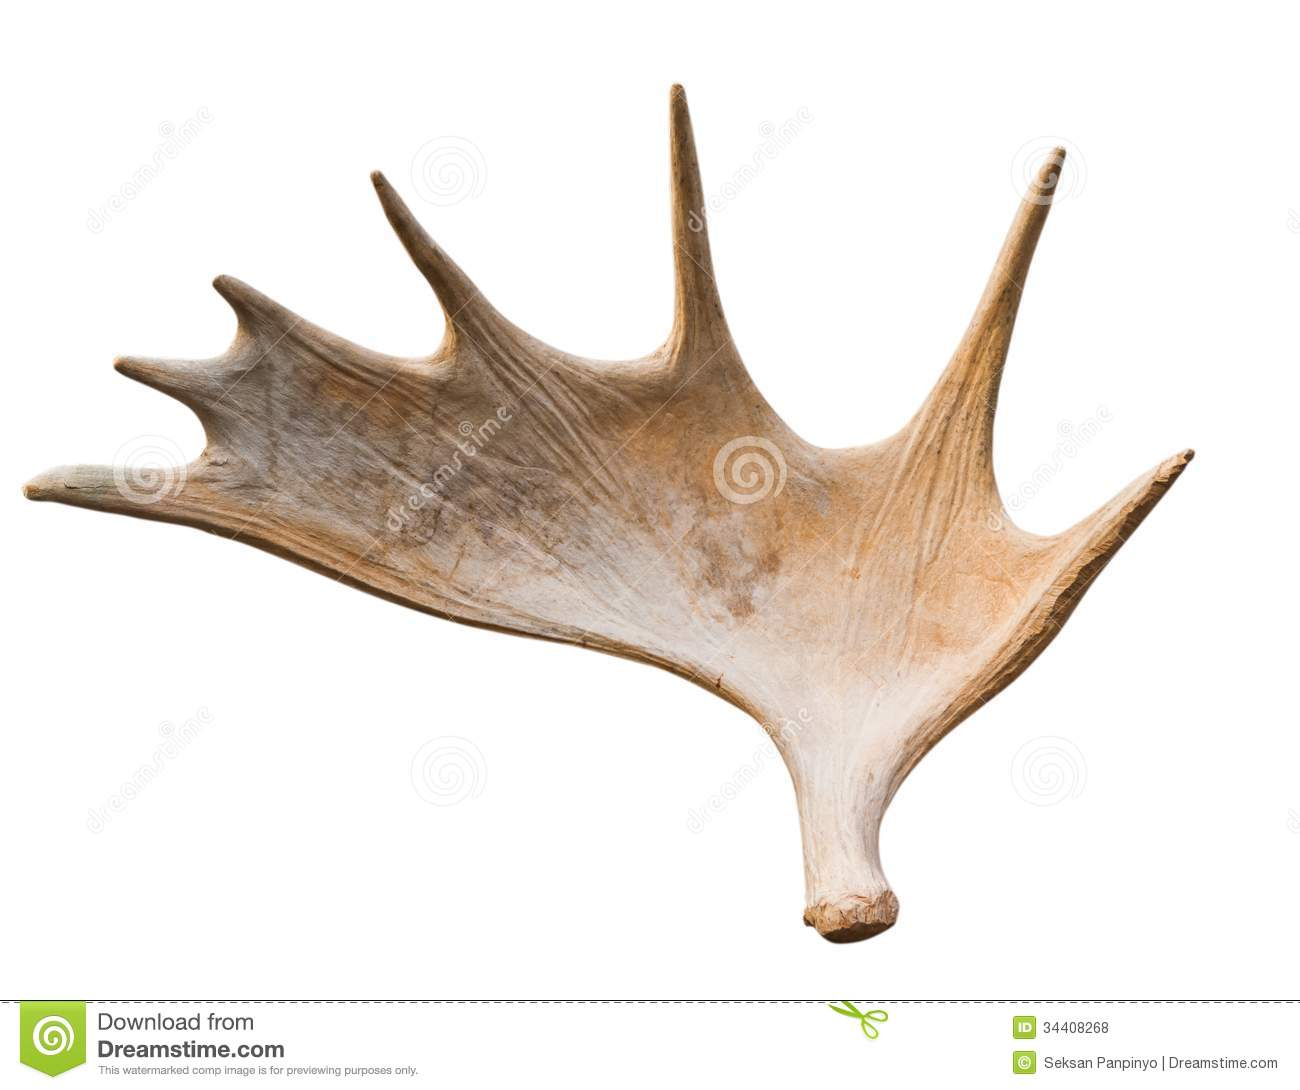 An angled view of a whitetail deer antler